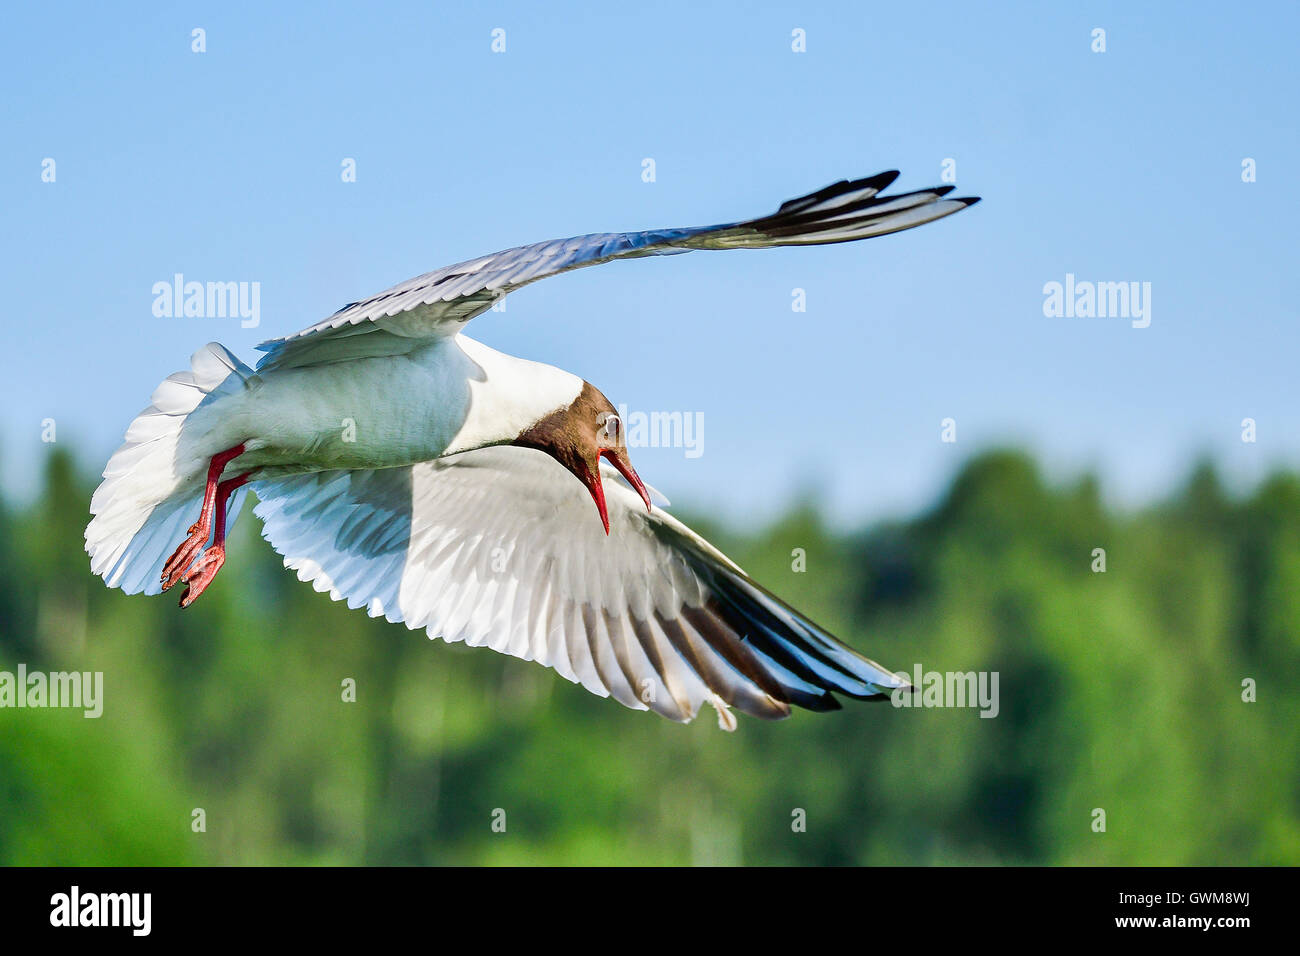 Black-headed gull - Stock Image